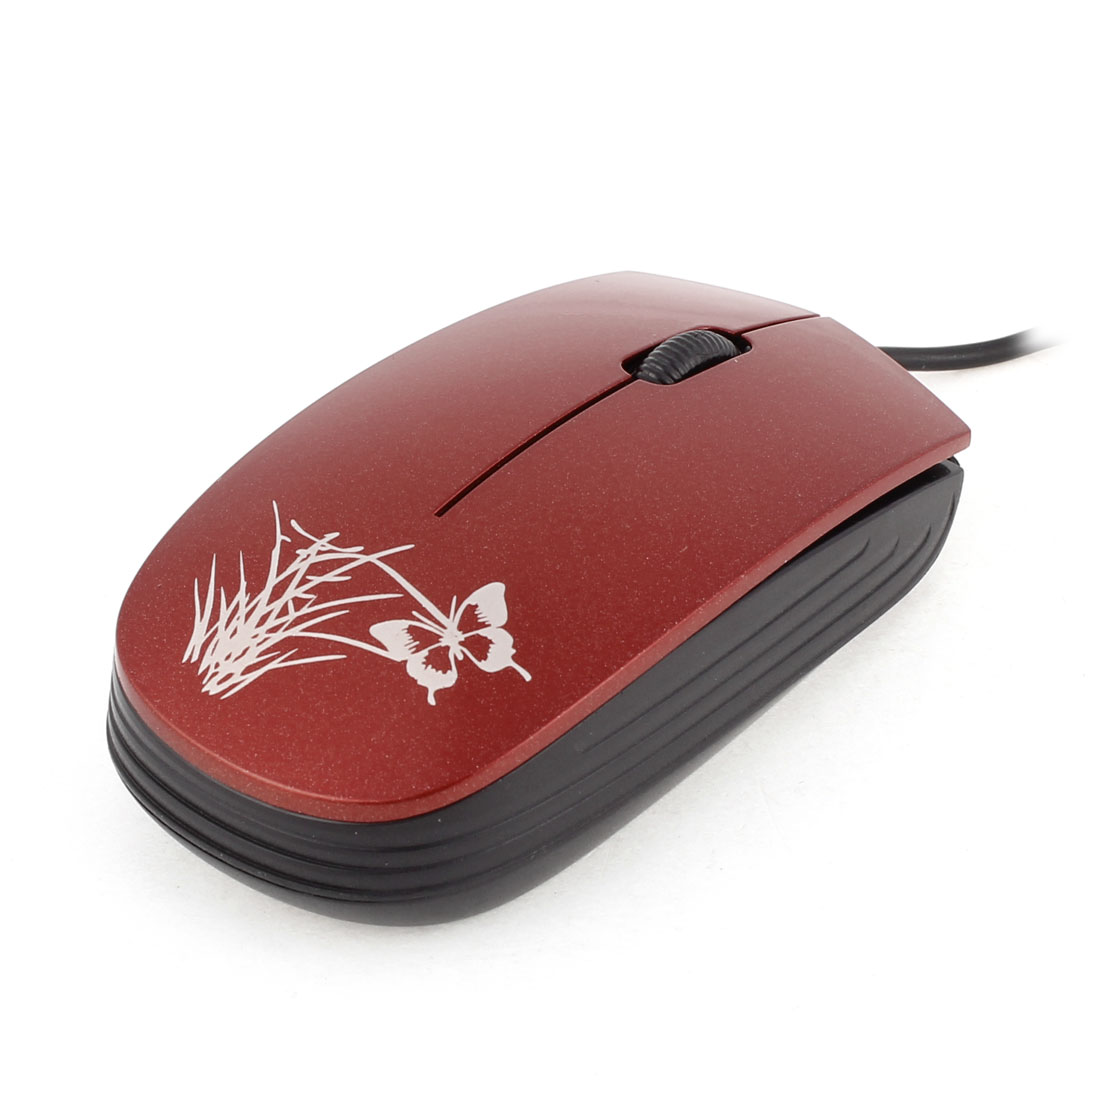 USB Optical 3D Scroll Wheel Mouse Mice Black Red for PC Computer